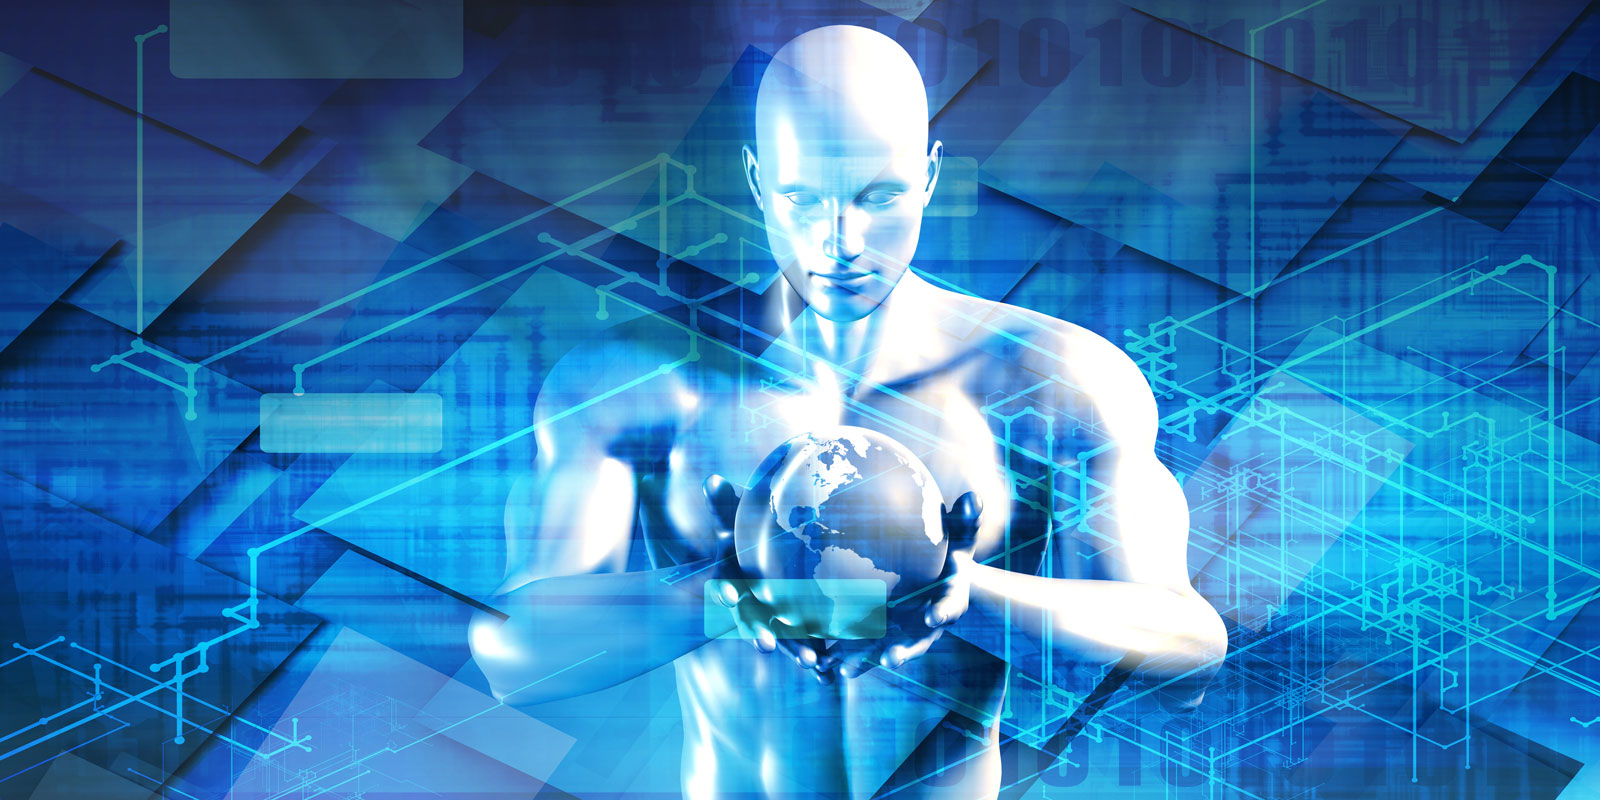 Man Holding Globe | The Most Notable Digital Advertising Trends Heading Into 2020